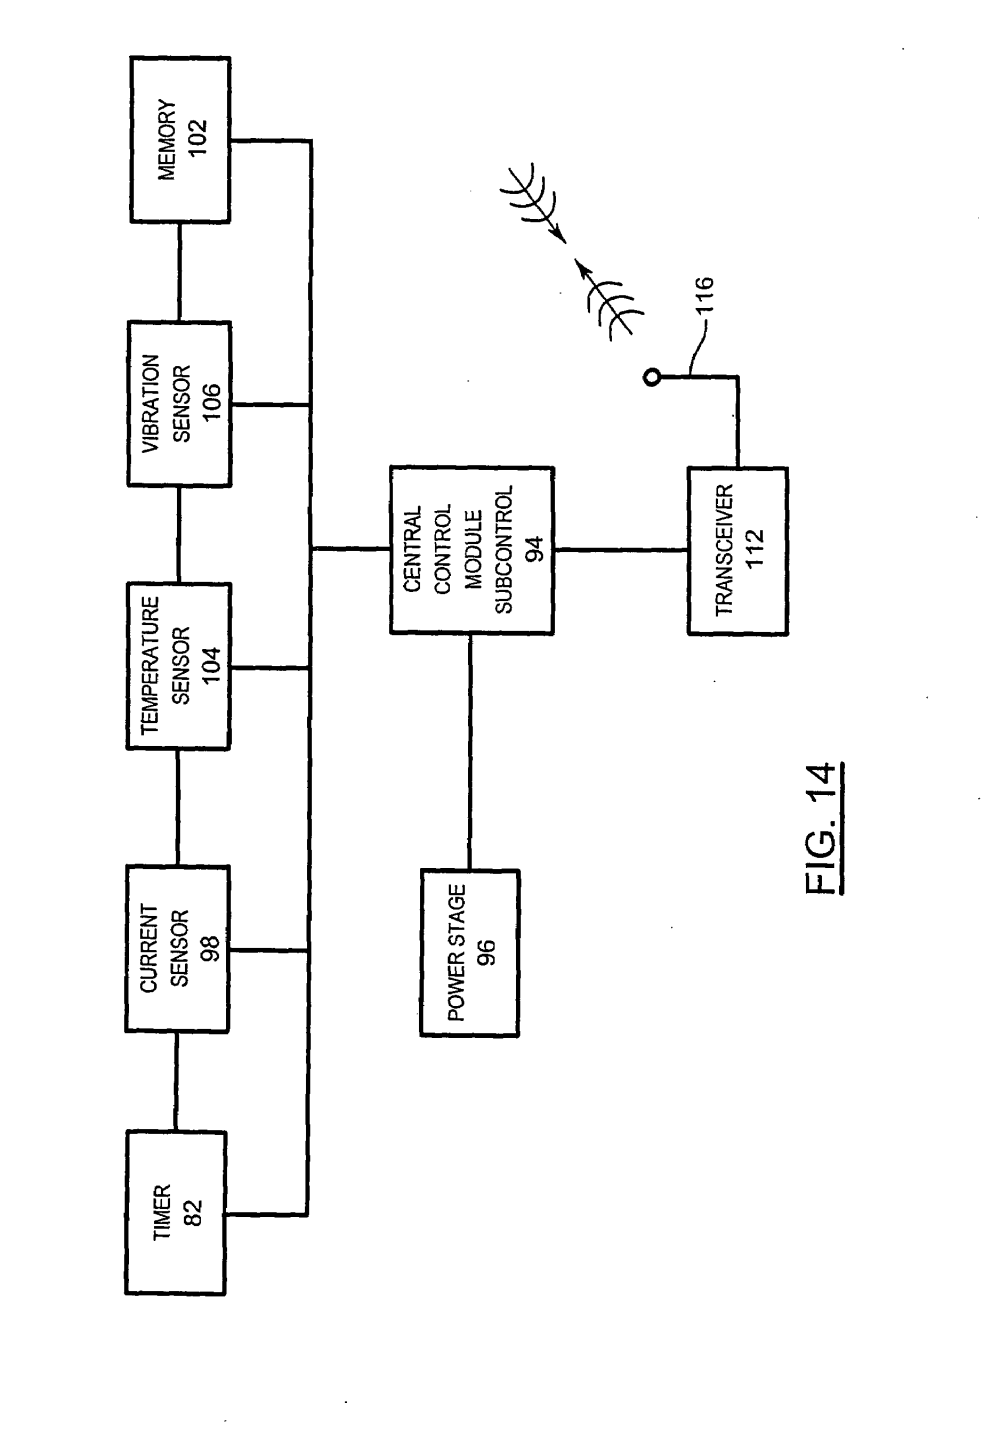 medium resolution of us20080184519a1 20080807 d00008 patent us20080184519 central vacuum cleaning system control 3 wire switch wiring diagram at